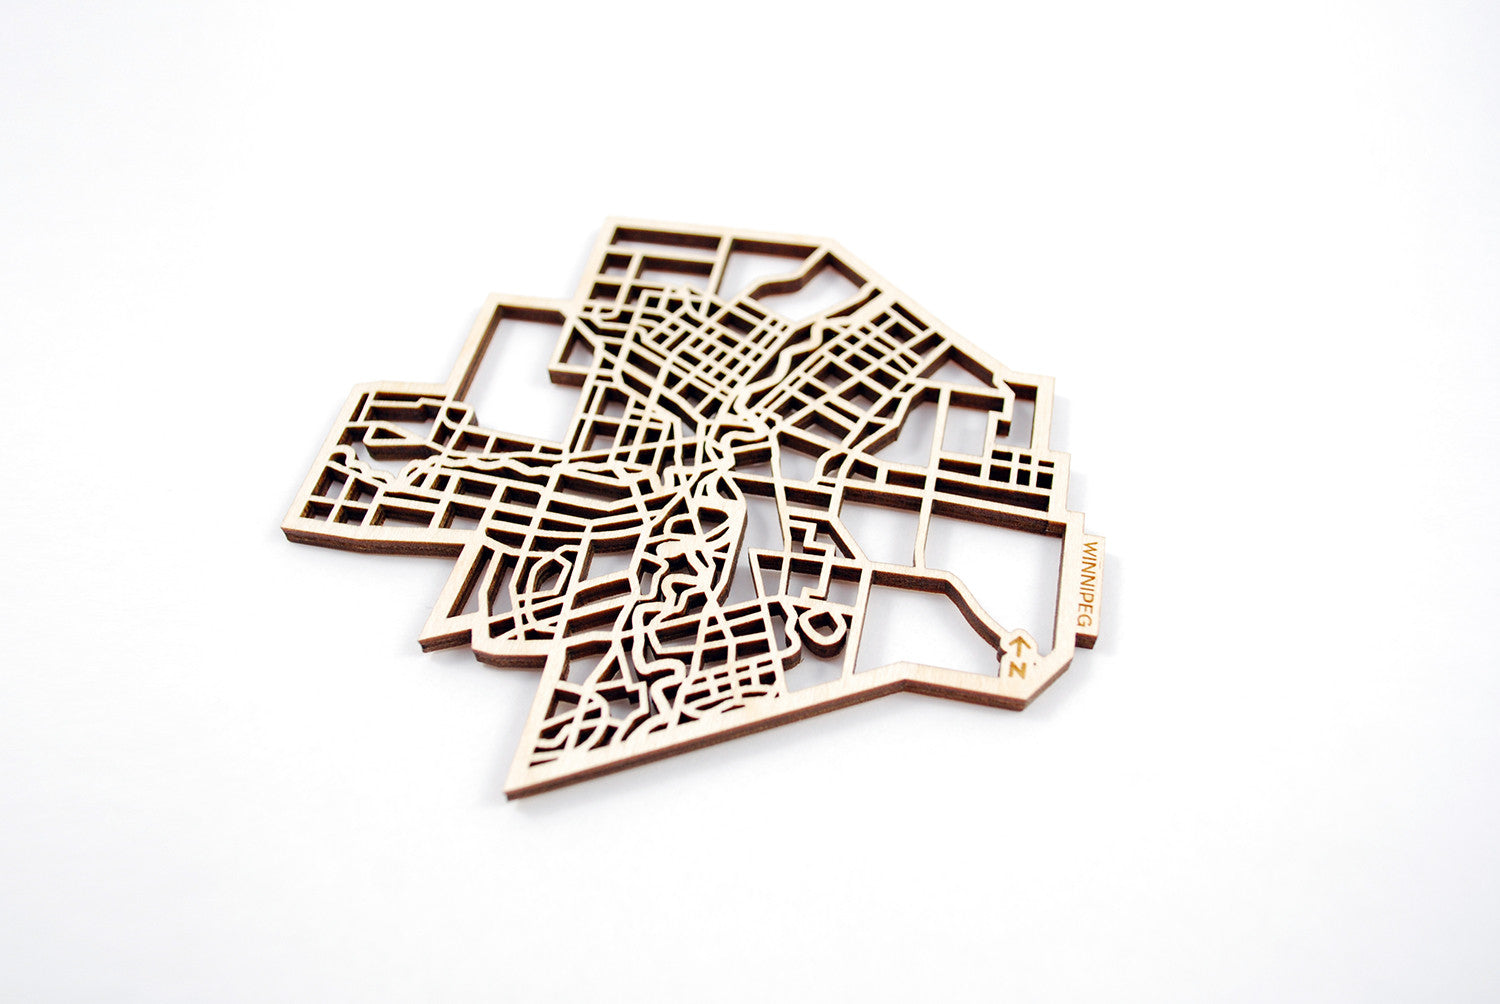 Winnipeg Map Coasters (set of 4)